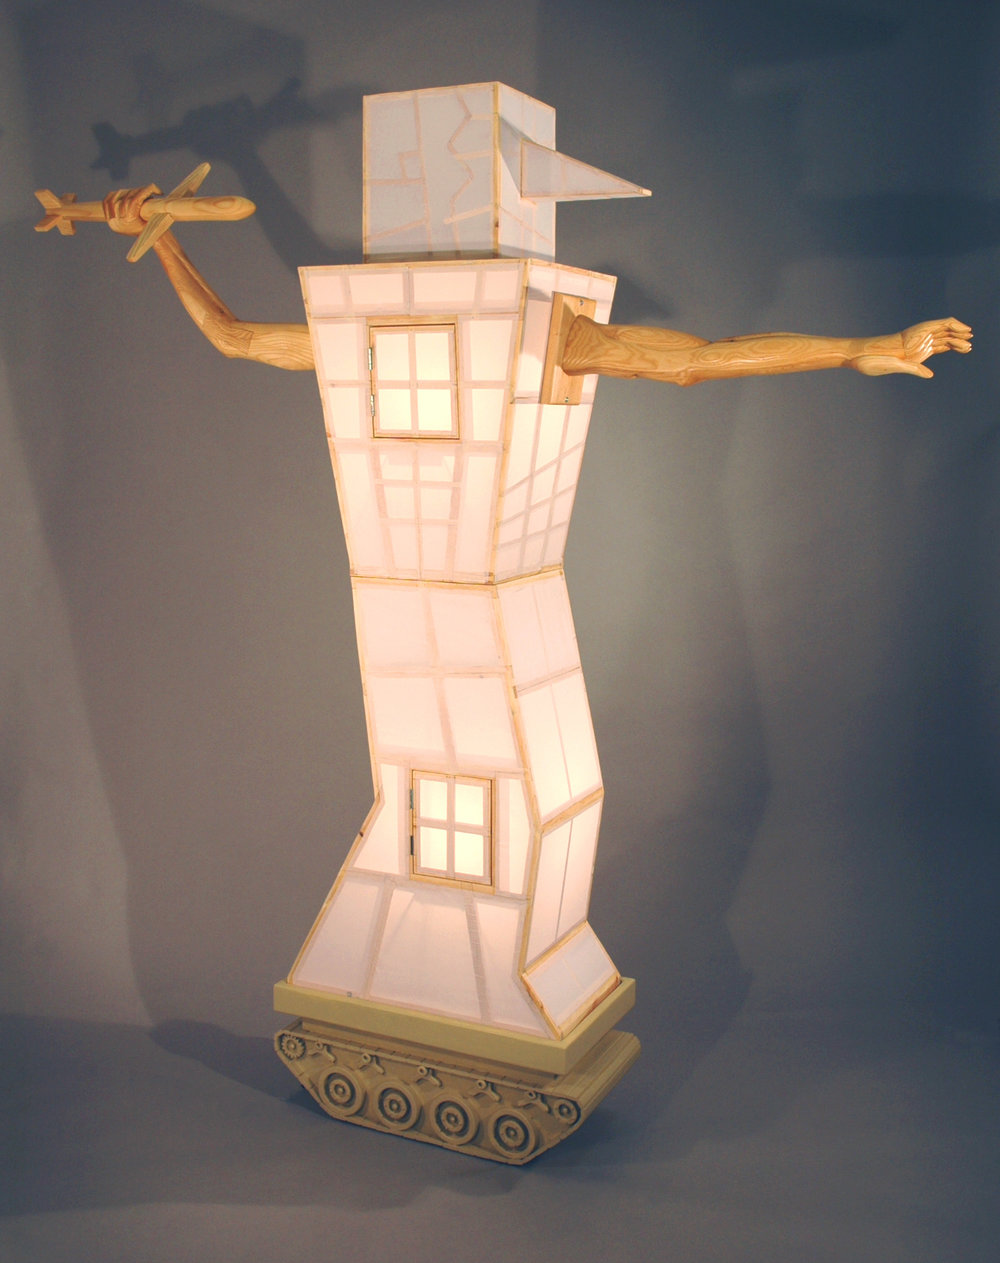 "14.        Title:  Illuminated Man?               Media: Wood, paper, paint, electrical elements,              motors, stones              Dimensions: 82""h x 65""w x 28""d"